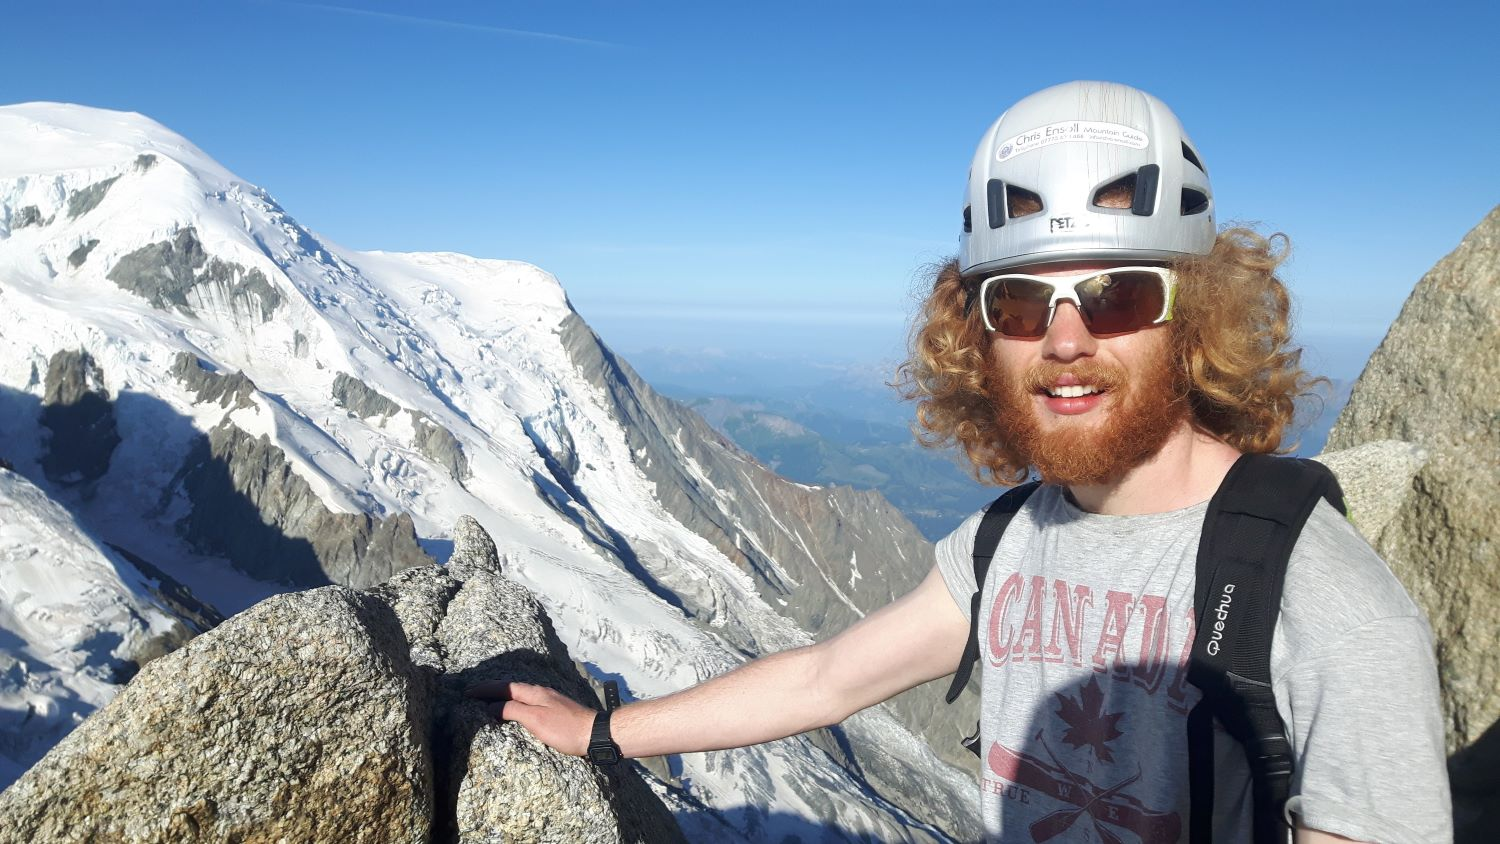 Day four: Sam near the top of the Arête des Cosmiques with the Aiguille du Goûter behind